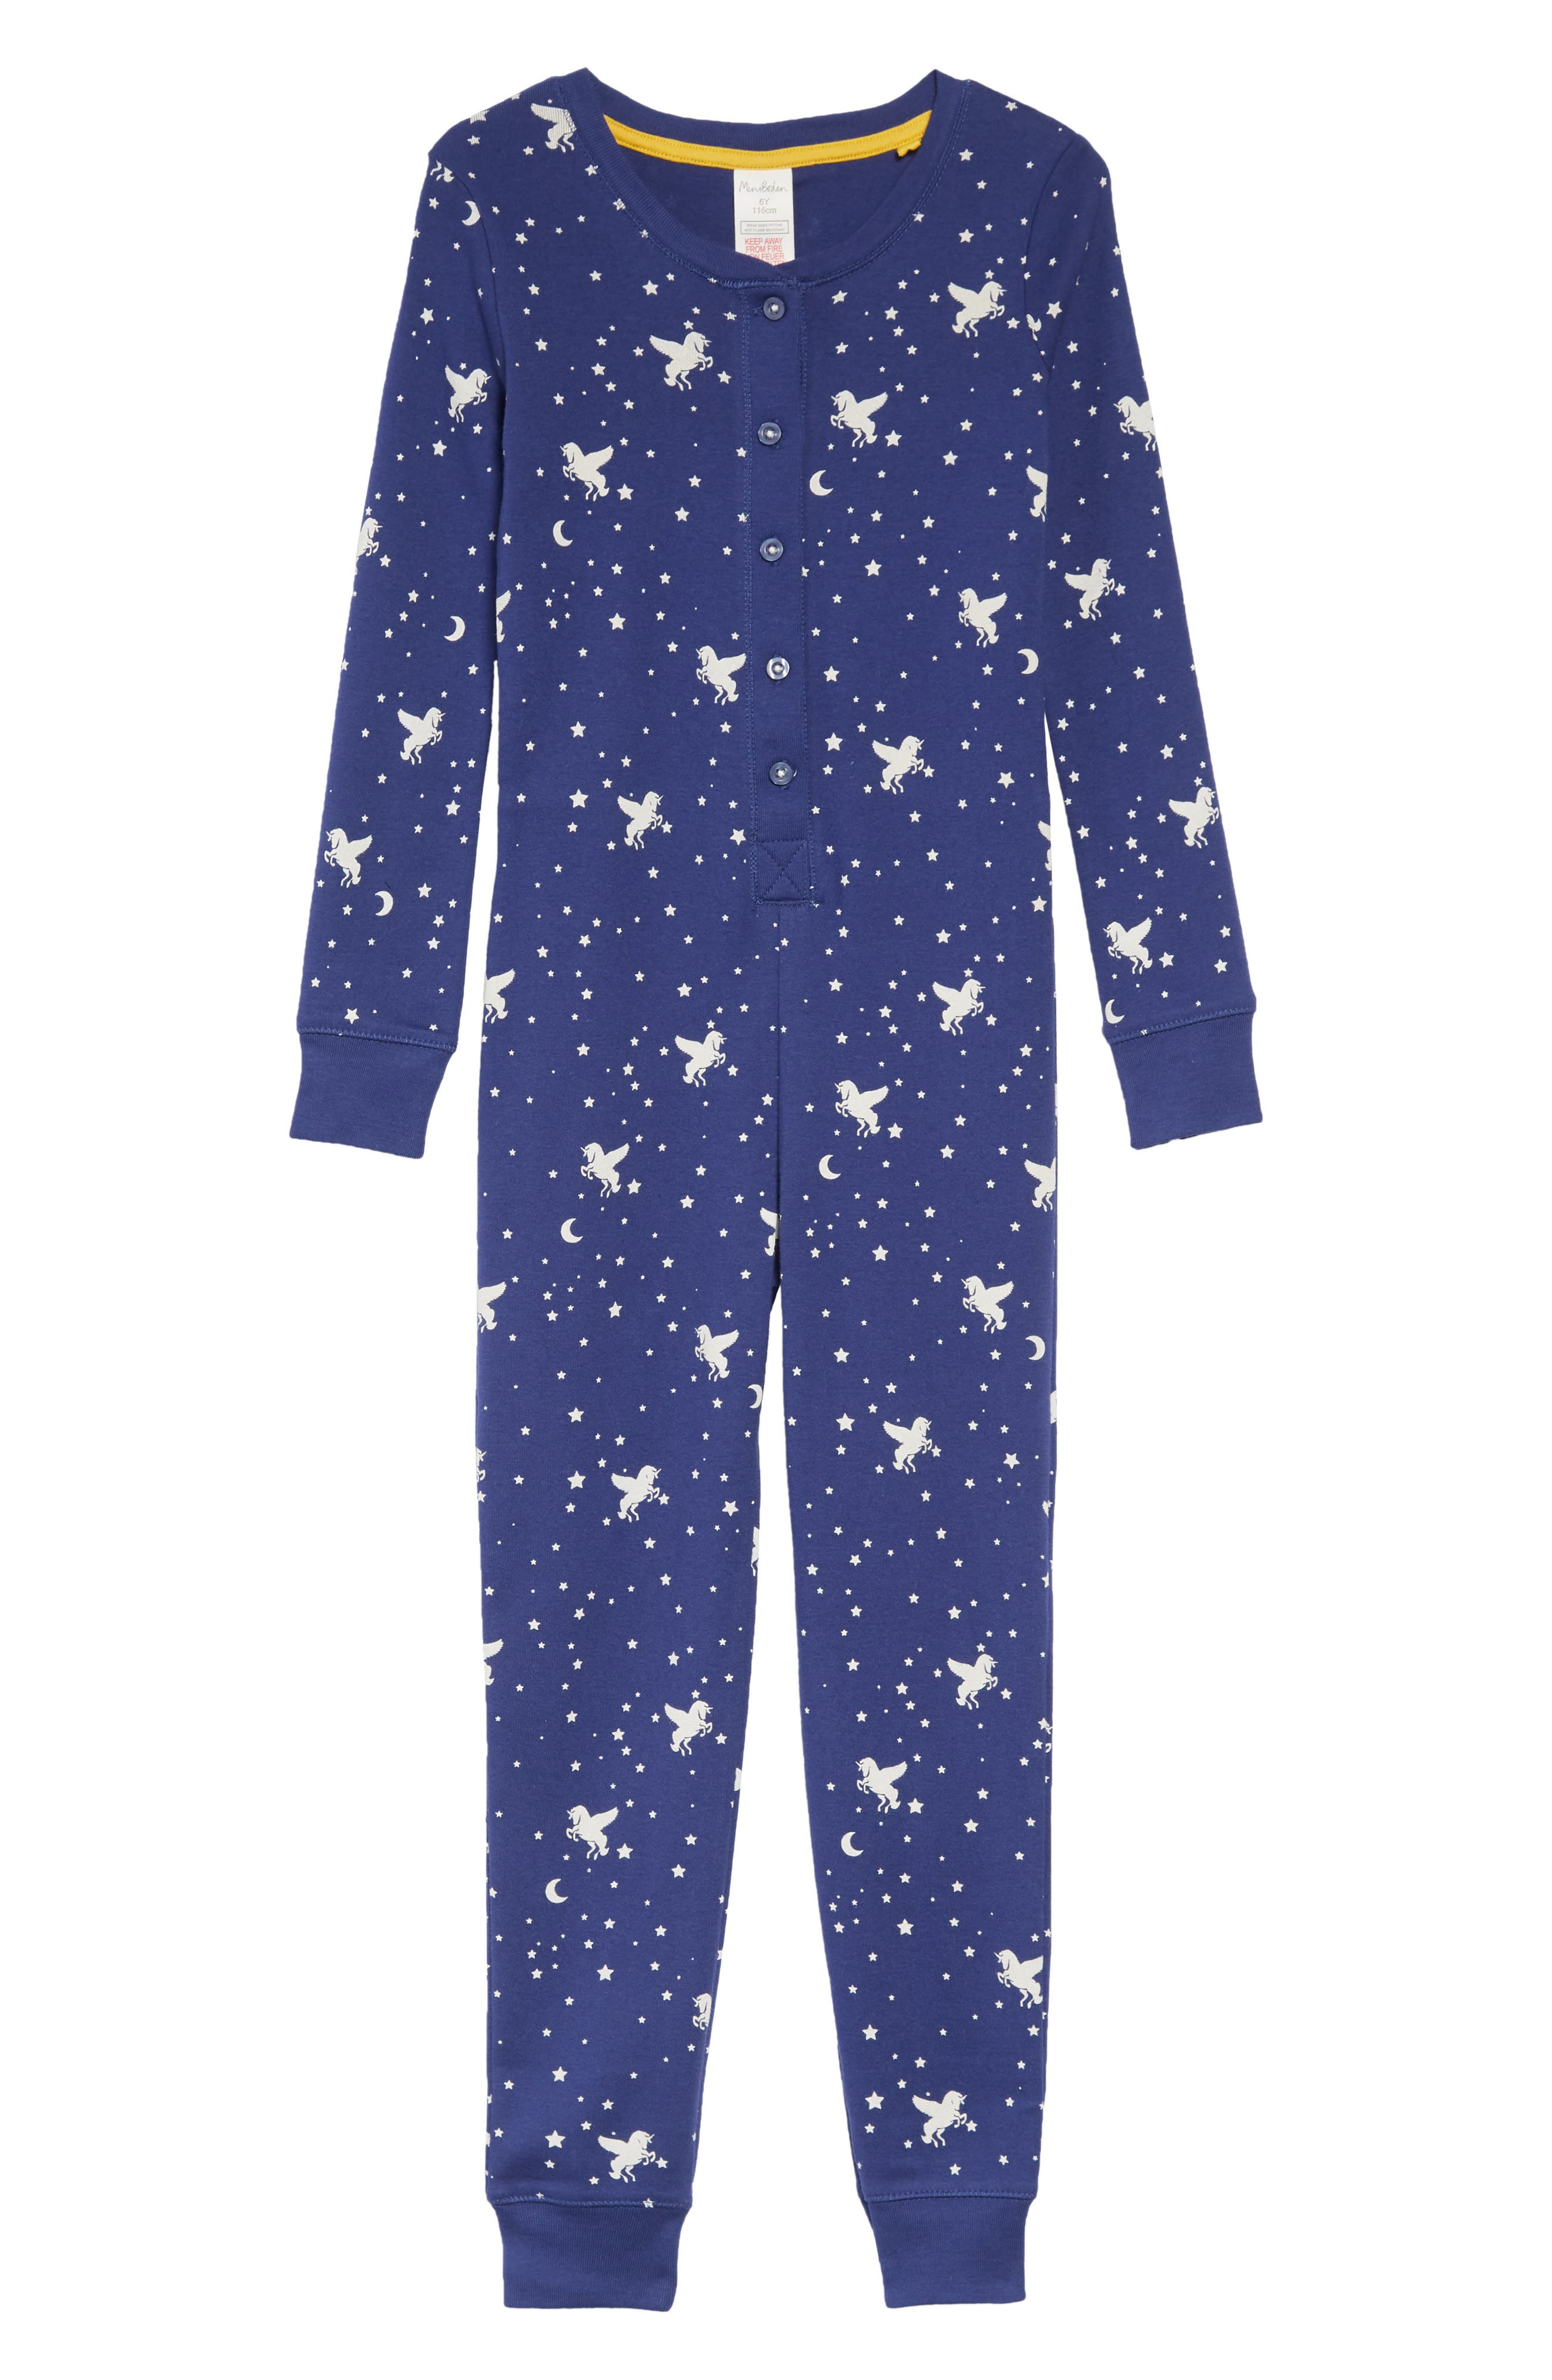 Toddler Girls Mini Boden Fitted Cosy All In One Pajamas Size 3Y  Blue